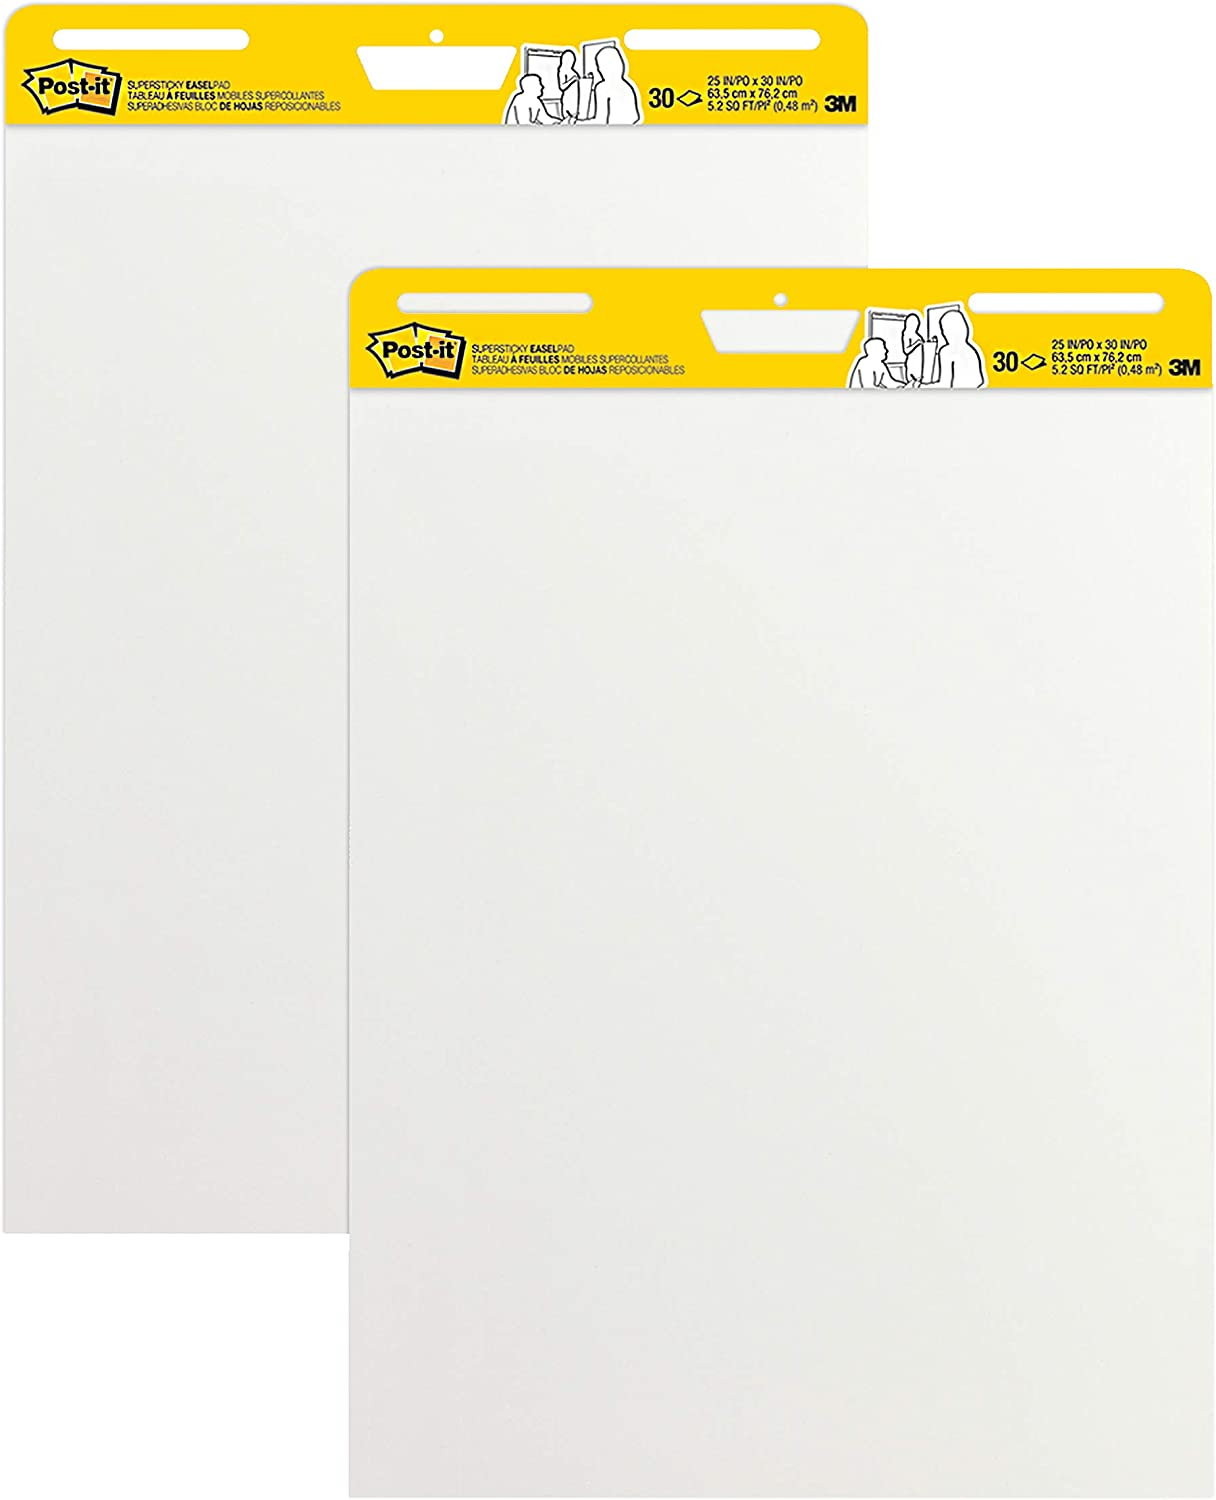 Post-it Super Sticky Easel Pad 25 Sheets White Excellence Colorado Springs Mall in x 30